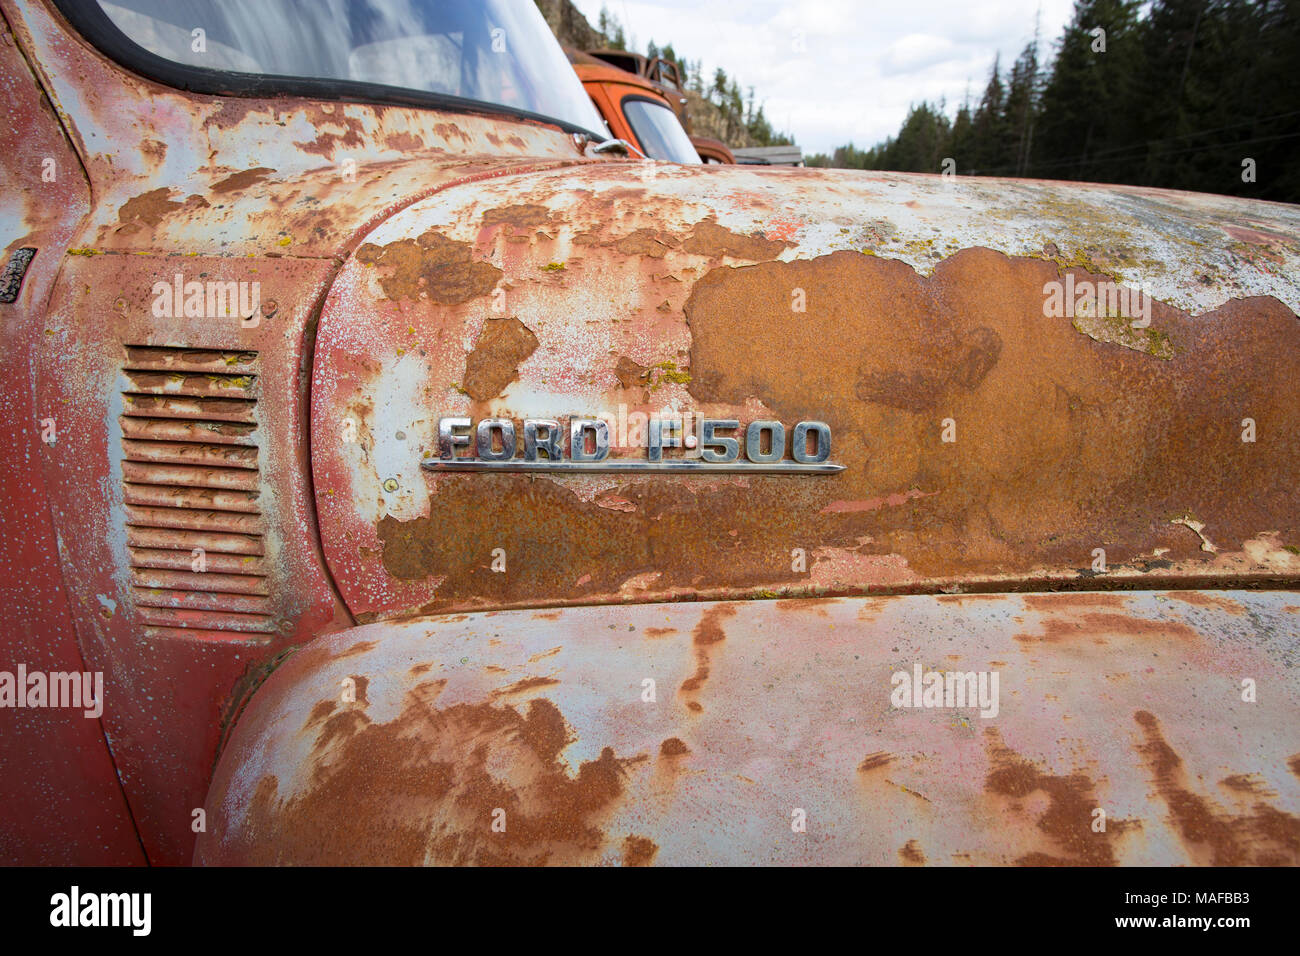 Vintage Red Ford Pickup Truck Stock Photos 1941 Farm The Chromed F 500 Logo On Side Of Hood An